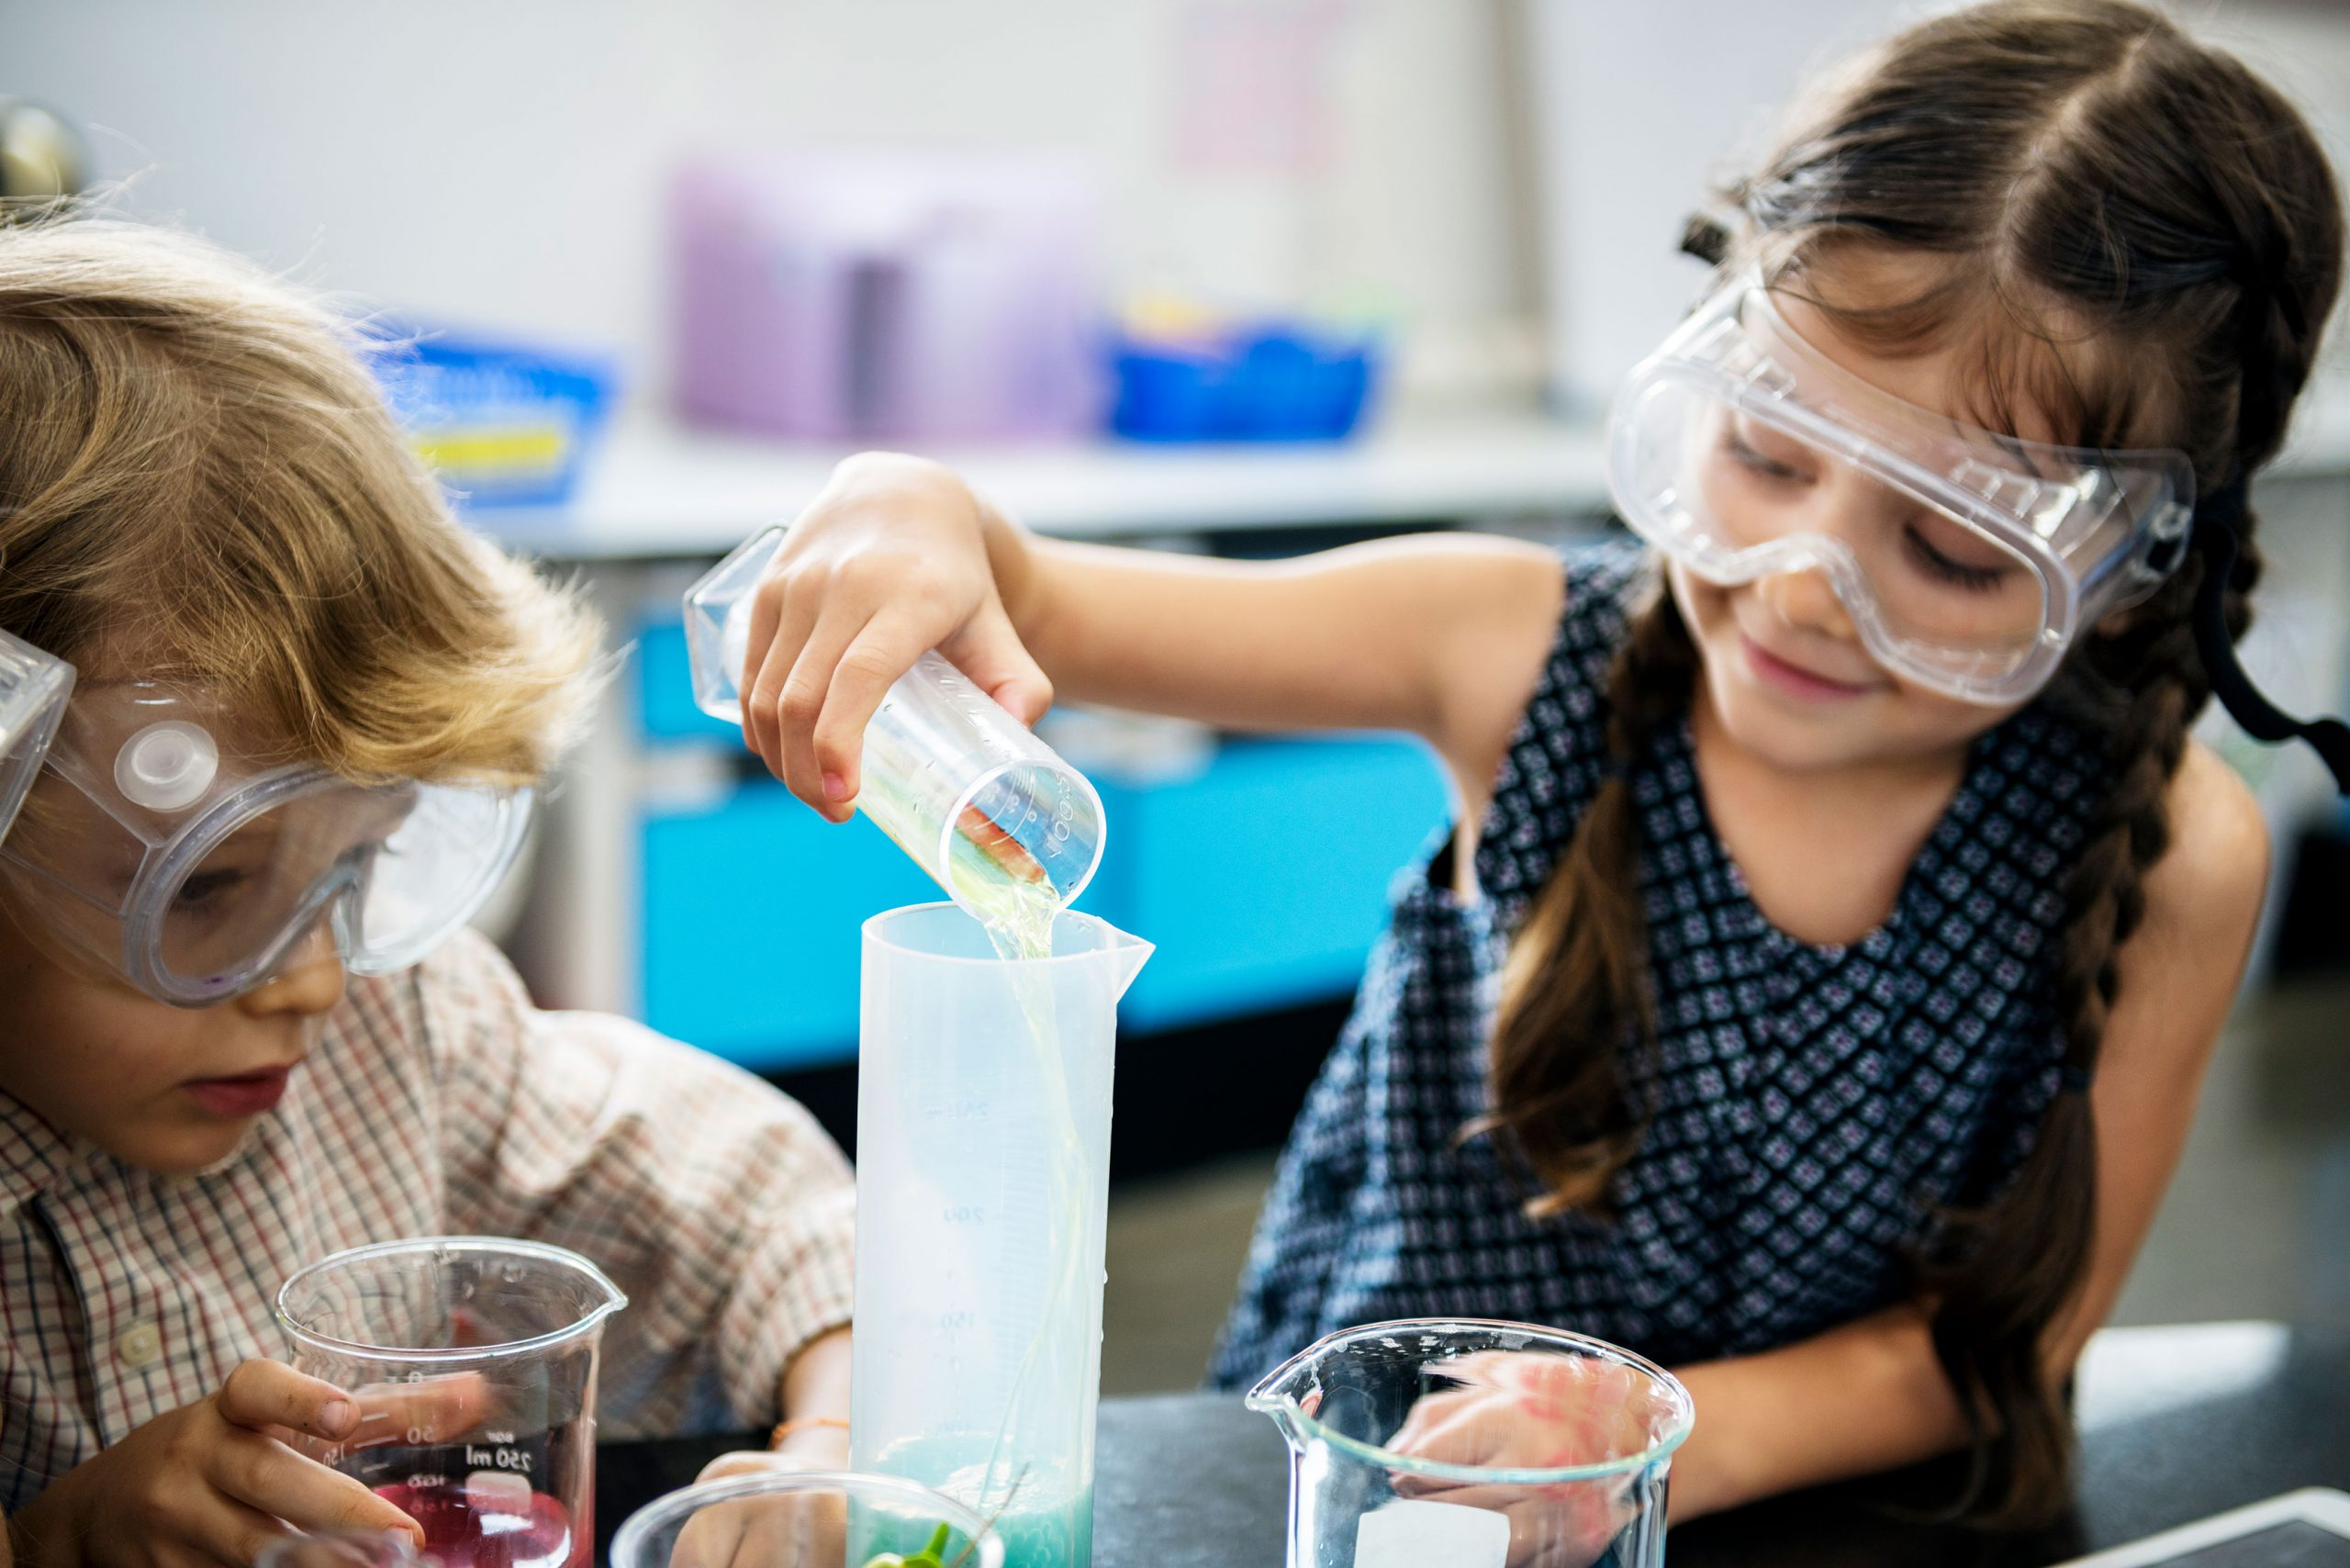 young girl and boy in lab